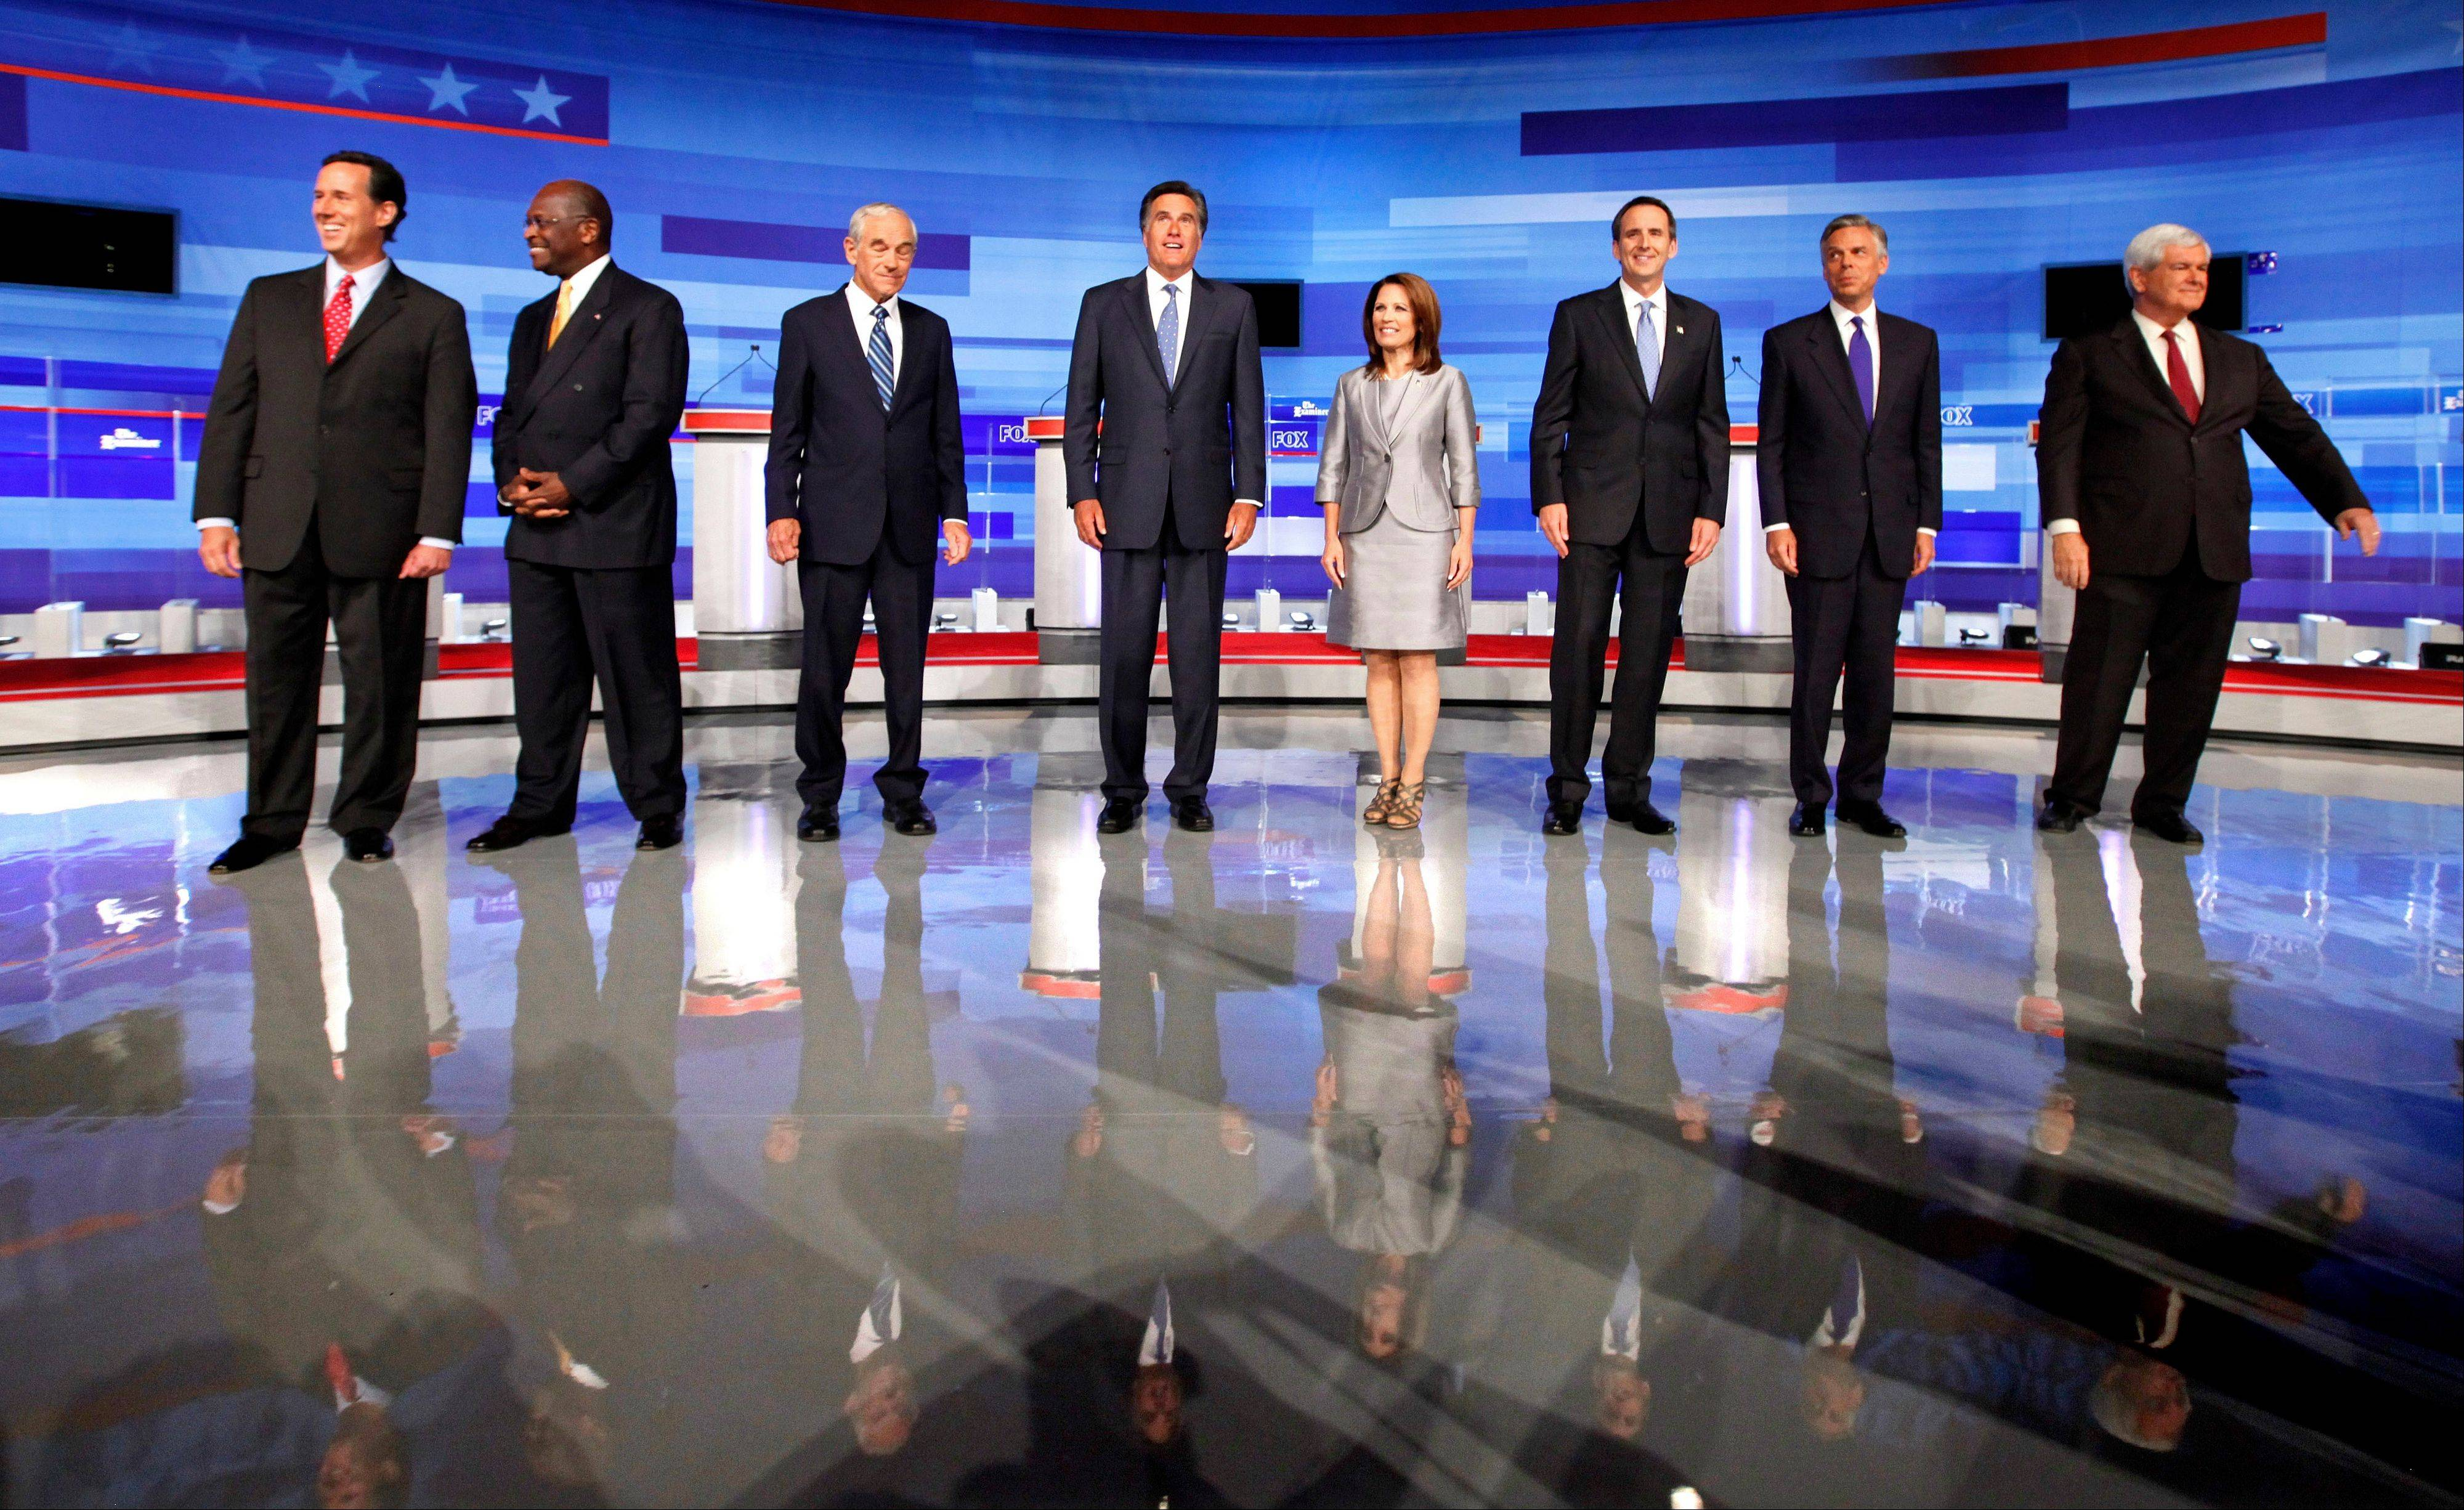 Republican presidential candidates former Pennsylvania Sen. Rick Santorum, from left, businessman Herman Cain, Rep. Ron Paul, R-Texas, former Massachusetts Gov. Mitt Romney, Rep. Michele Bachmann, R-Minn., former Minnesota Governor Tim Pawlenty, former Utah Gov. Jon Huntsman, and former House Speaker Newt Gingrich.